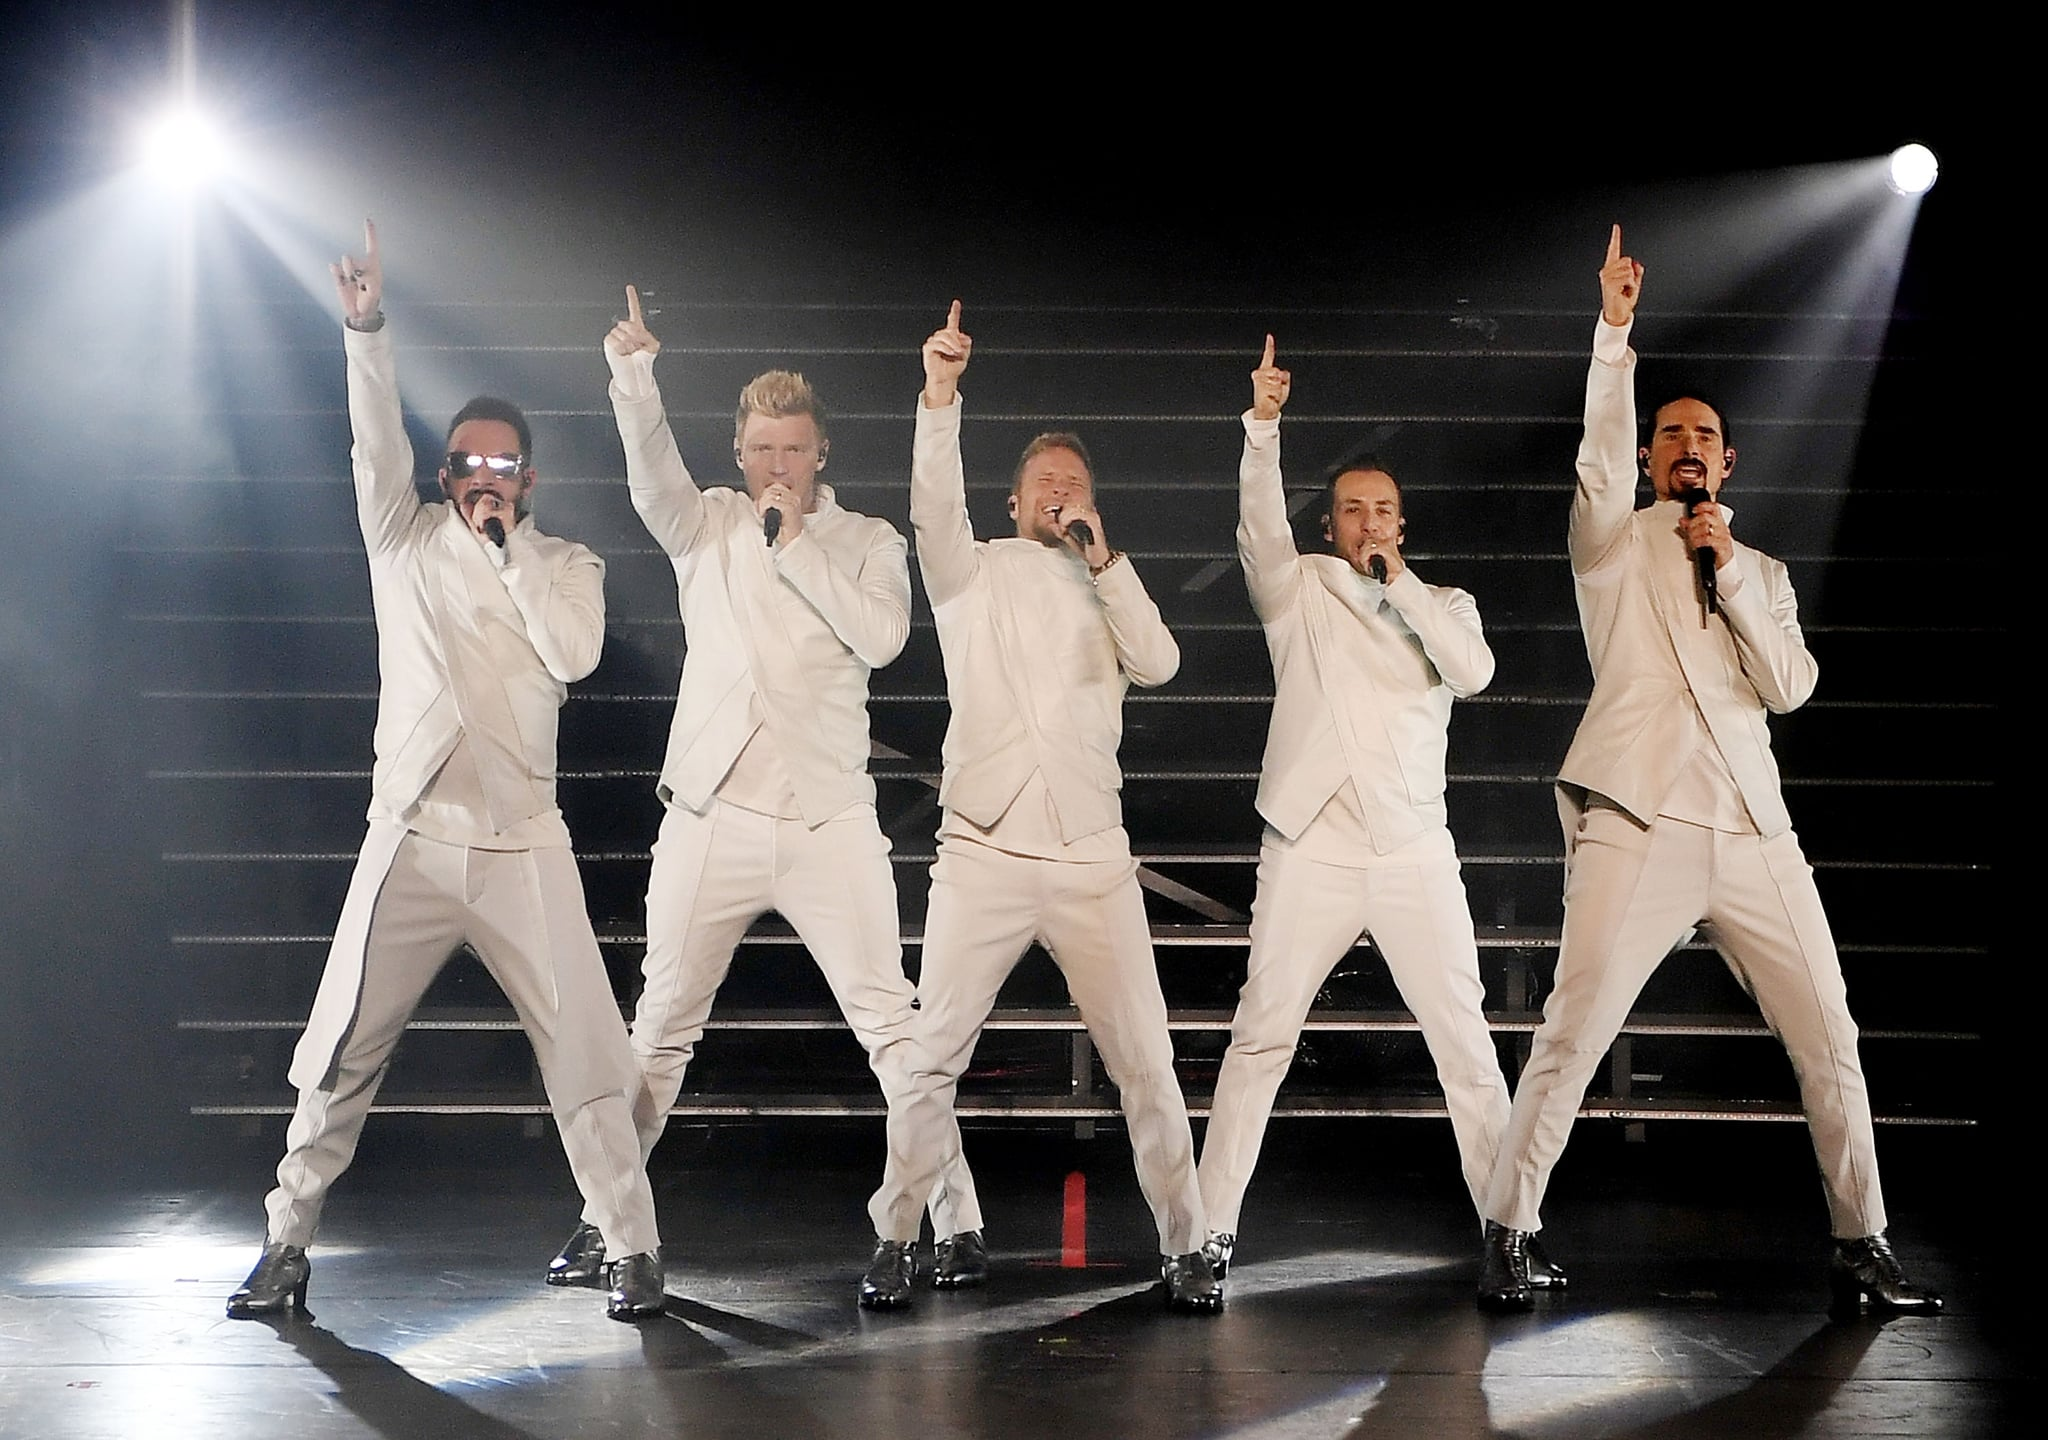 LAS VEGAS, NV - MARCH 01:  (L-R) Singers AJ McLean, Nick Carter, Brian Littrell, Howie Dorough and Kevin Richardson of the Backstreet Boys perform during the launch of the group's residency